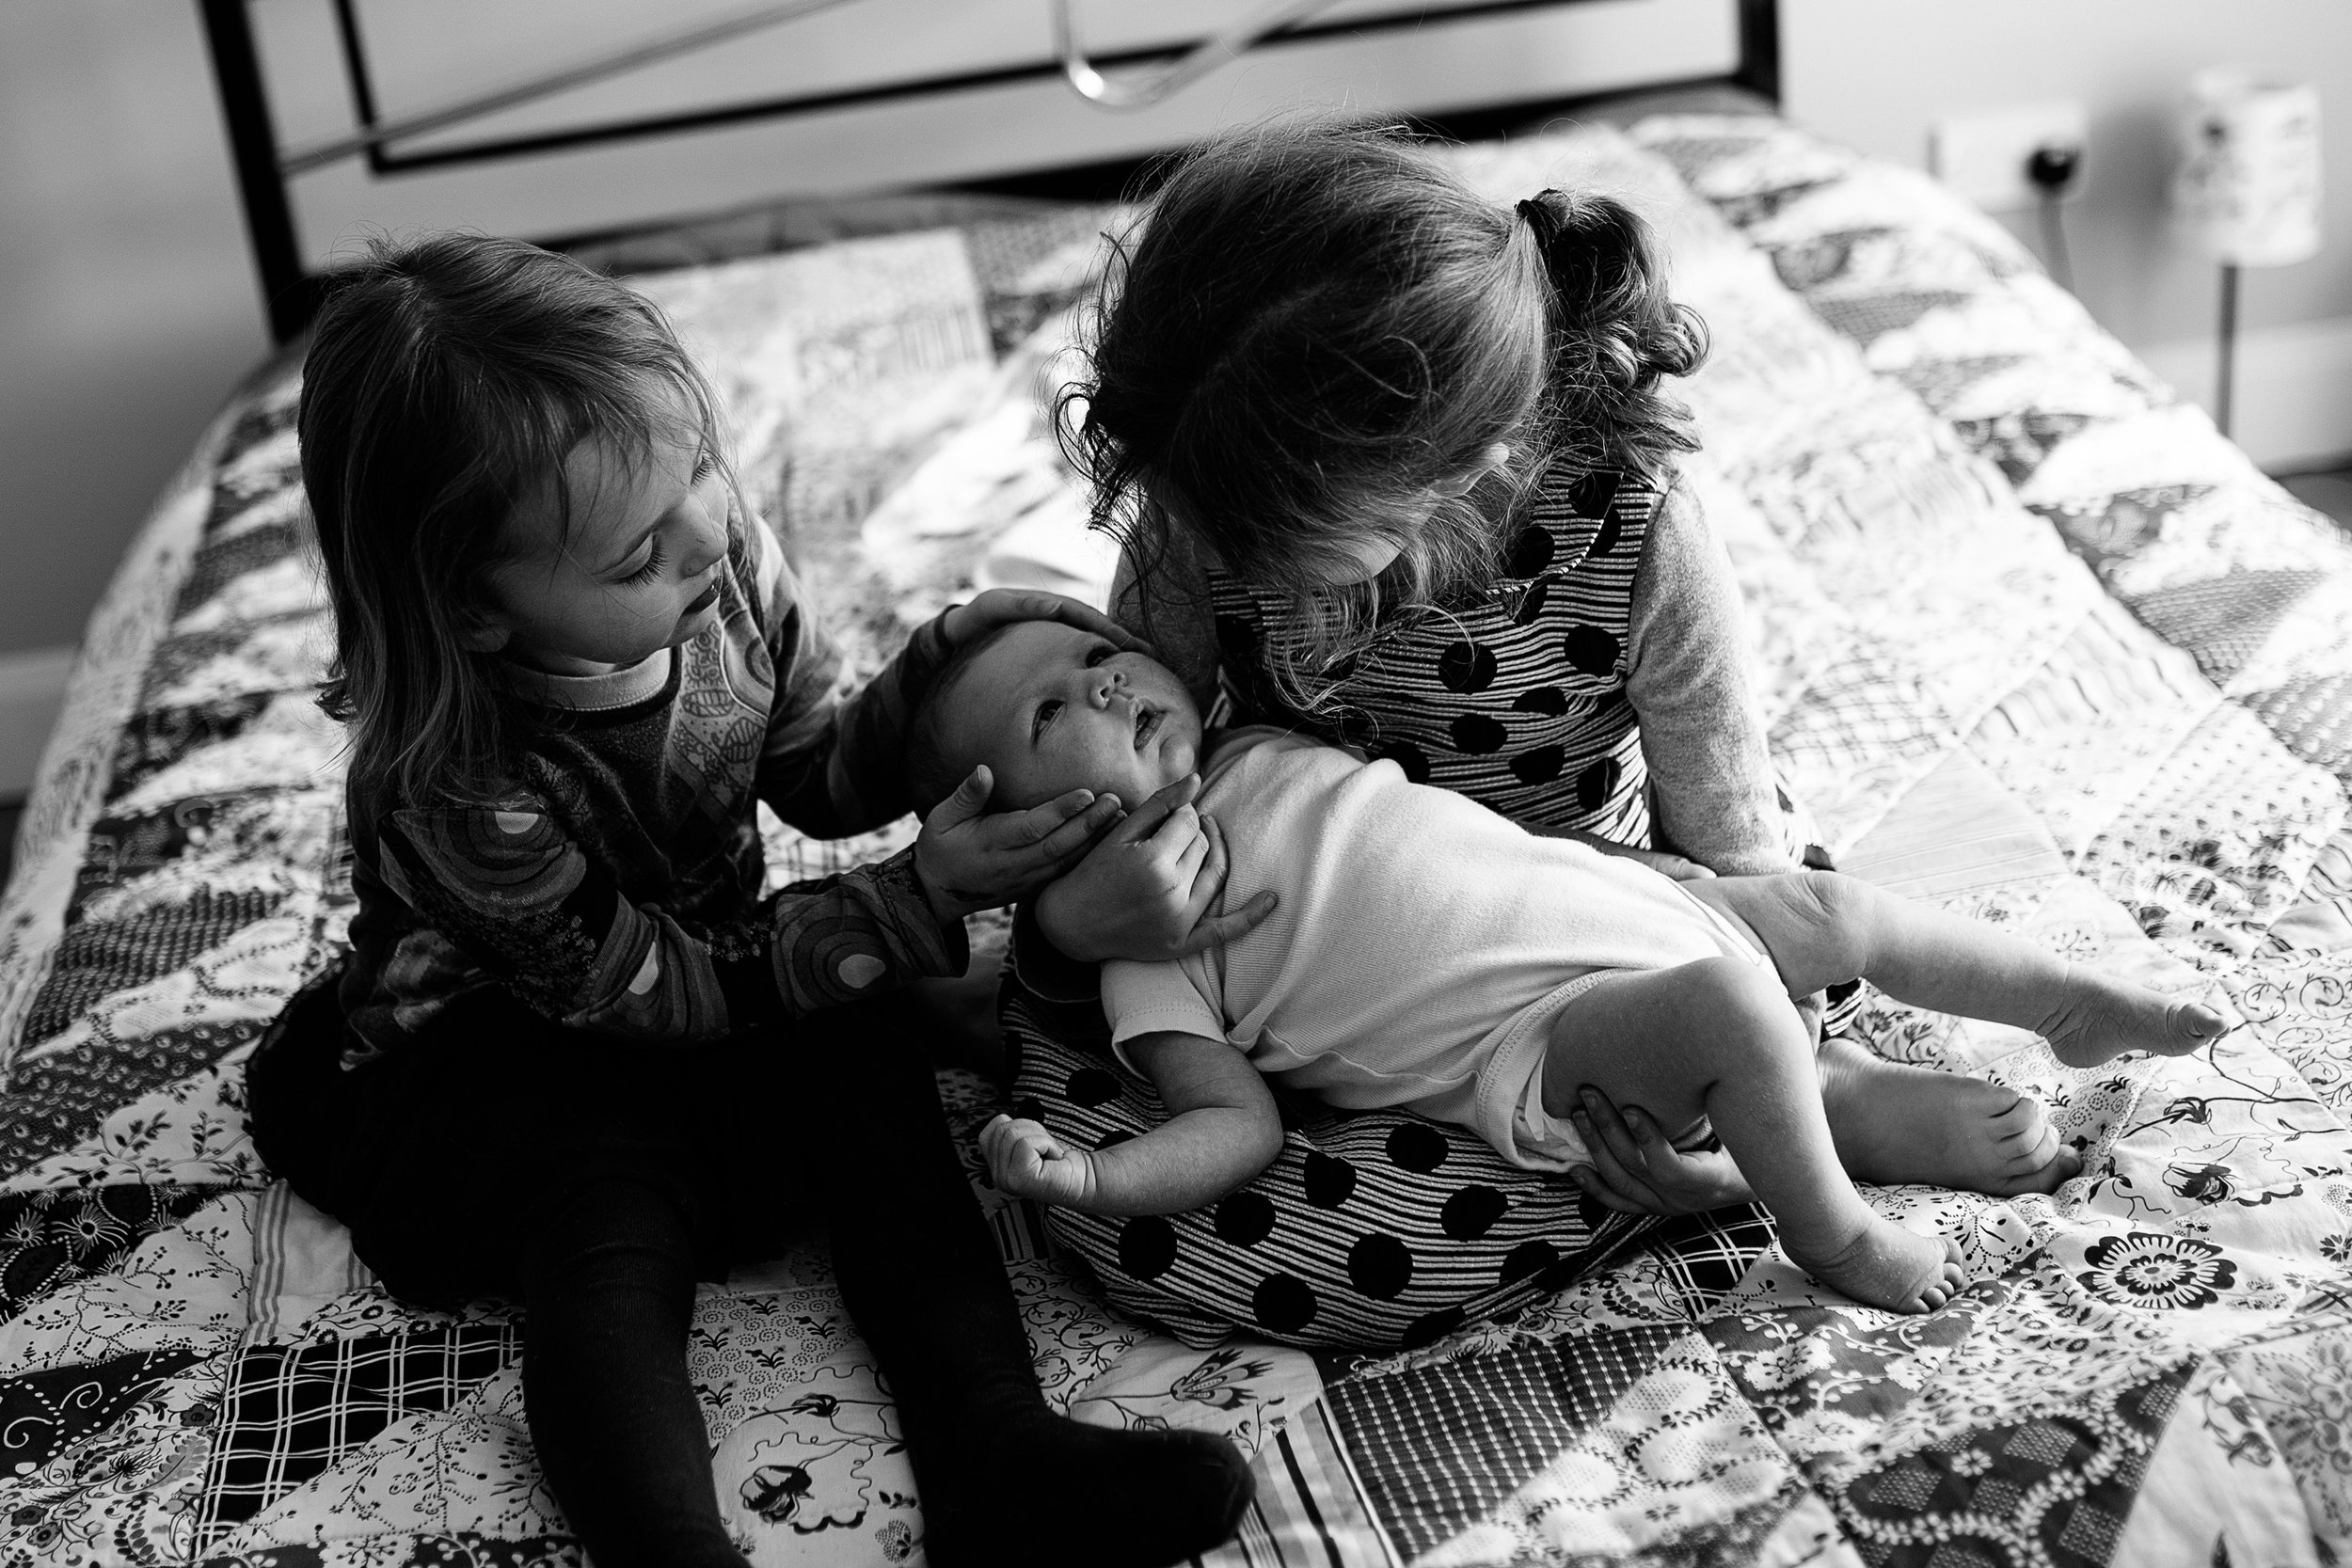 Two sisters looking at their newborn baby on the bed at home